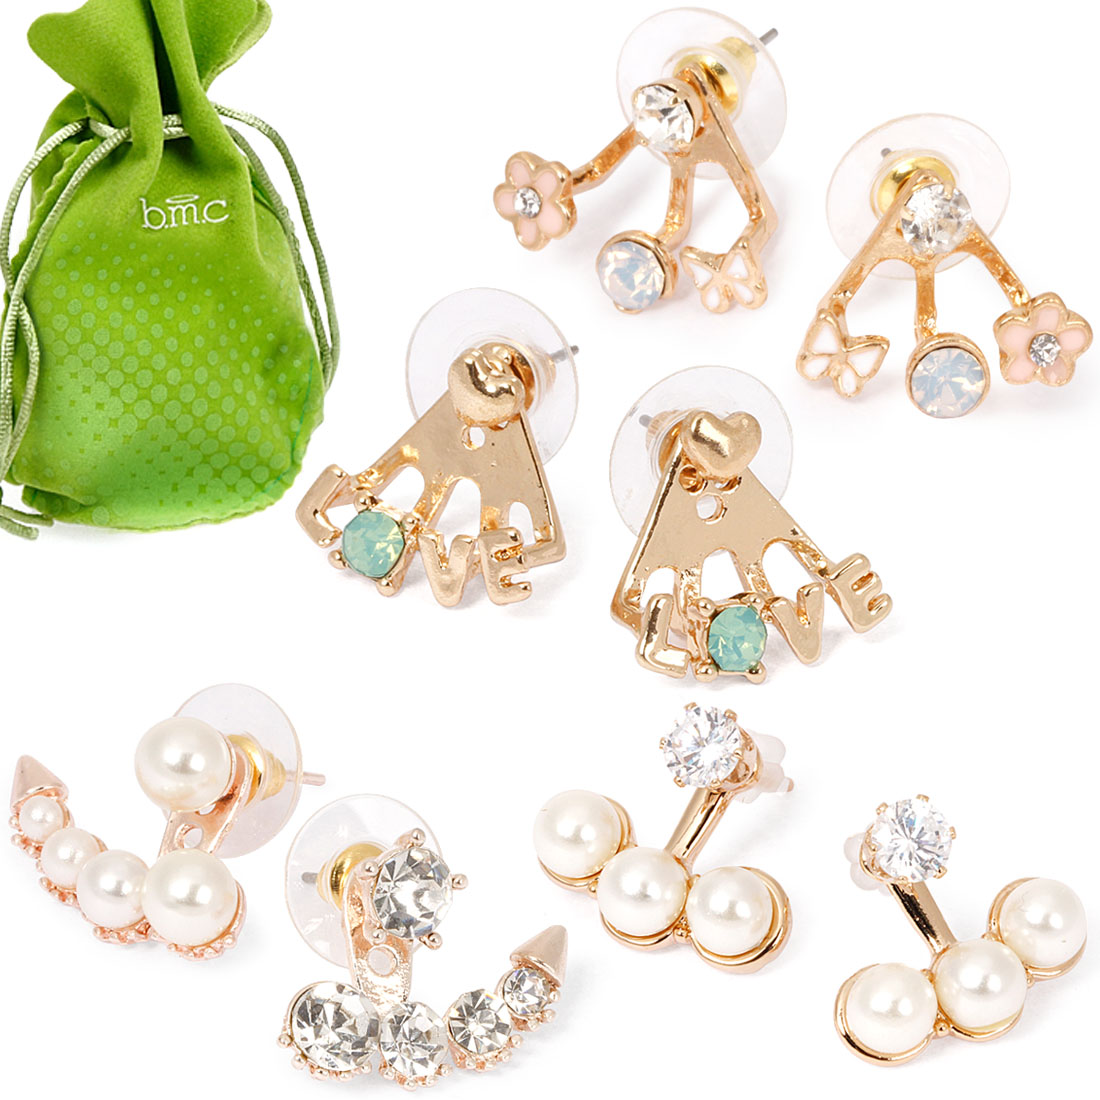 BMC Super Cute Girly 4 Pair Mini Gold Rhinestone Ear Cuff Stud Earring Set